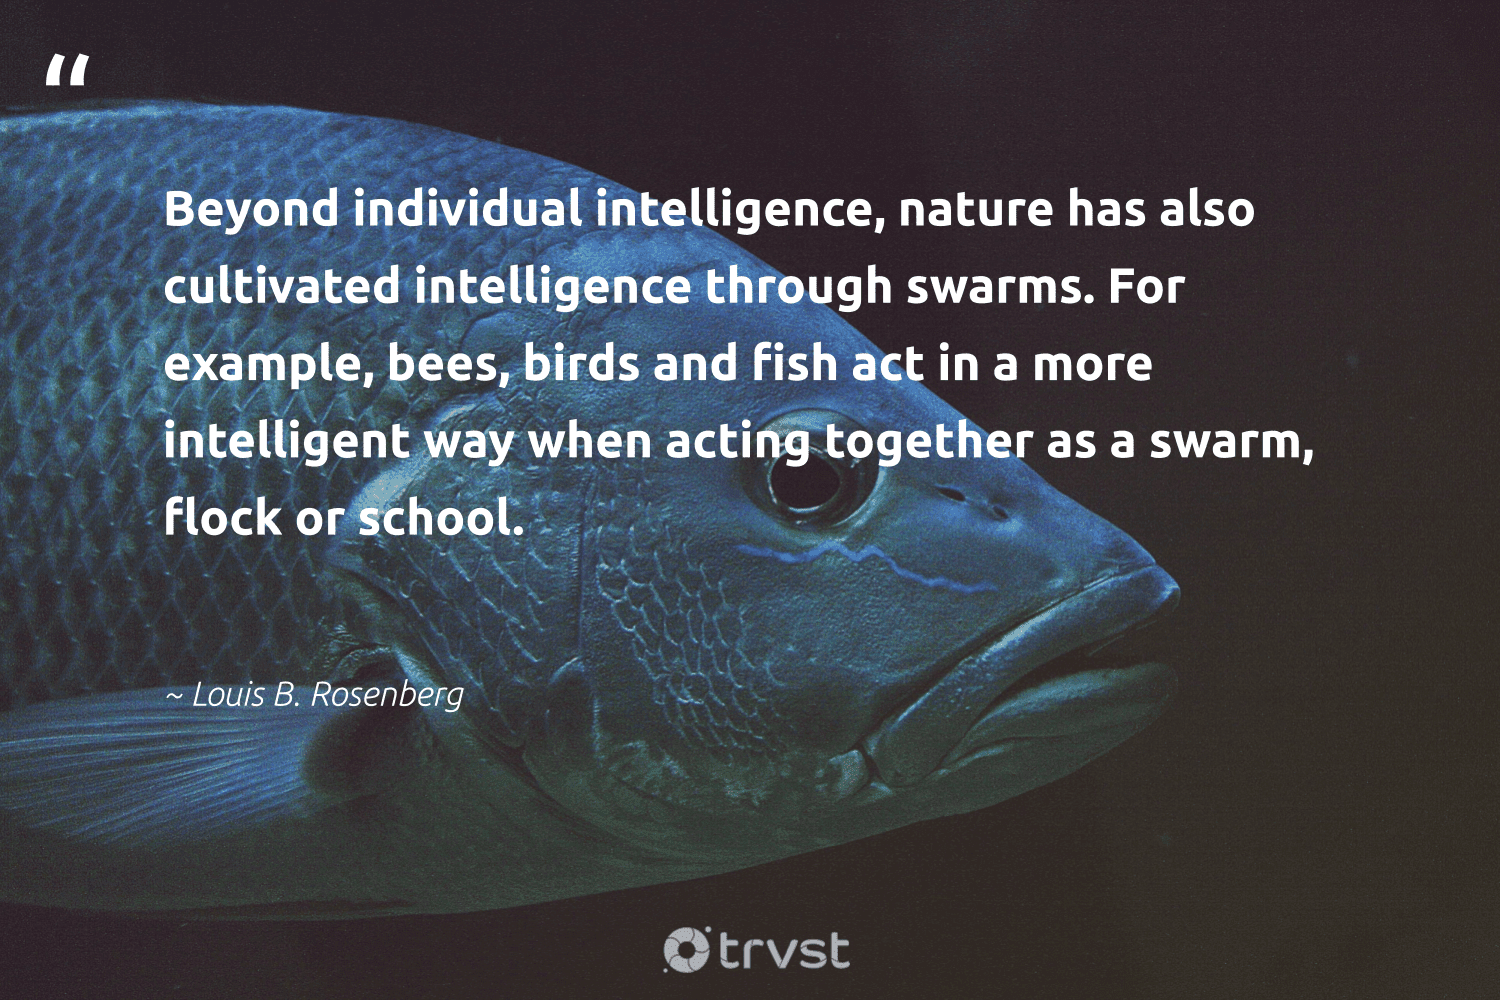 """""""Beyond individual intelligence, nature has also cultivated intelligence through swarms. For example, bees, birds and fish act in a more intelligent way when acting together as a swarm, flock or school.""""  - Louis B. Rosenberg #trvst #quotes #nature #fish #birds #bees #earth #amazingworld #gogreen #bethechange #environment #savetheoceans"""